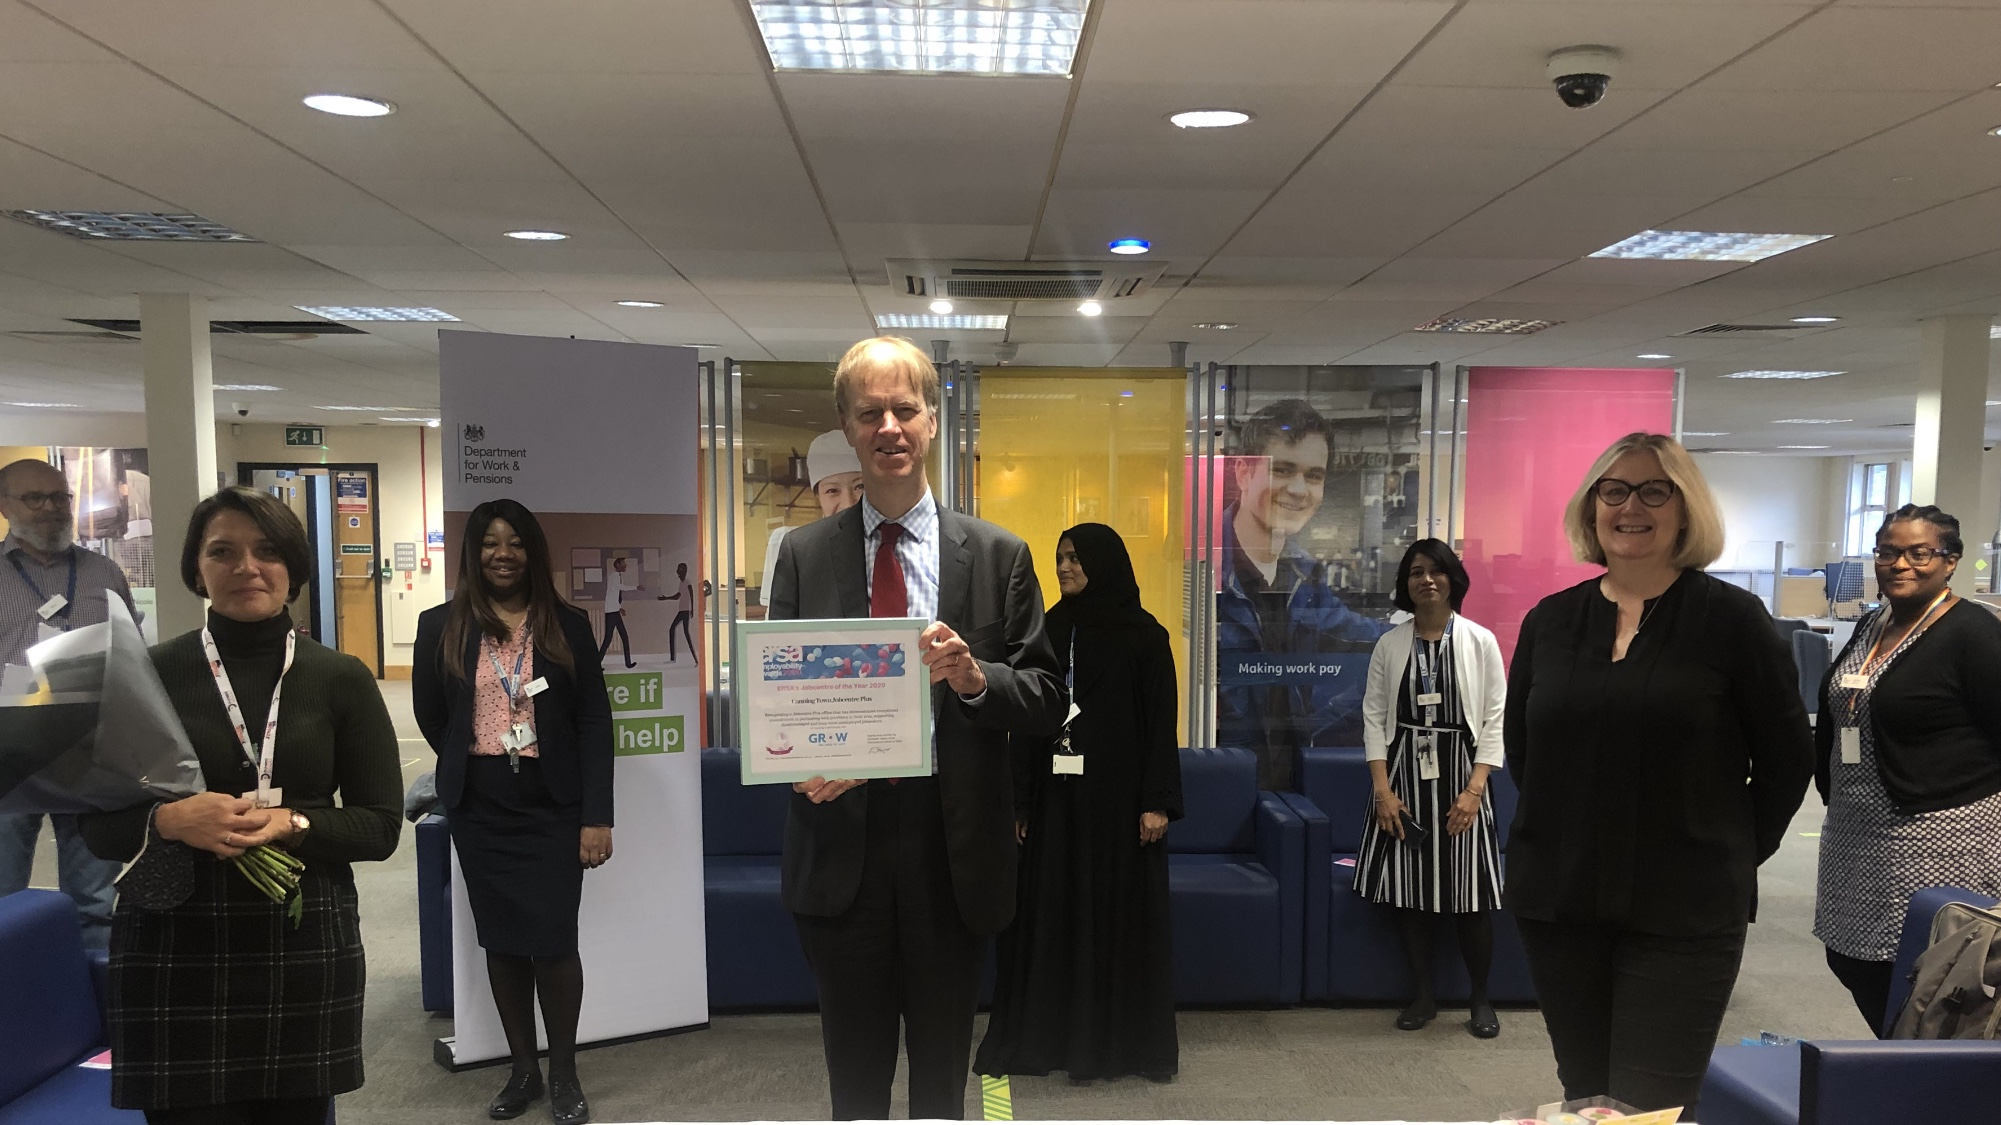 ERSA Jobcentre of the Year 2020